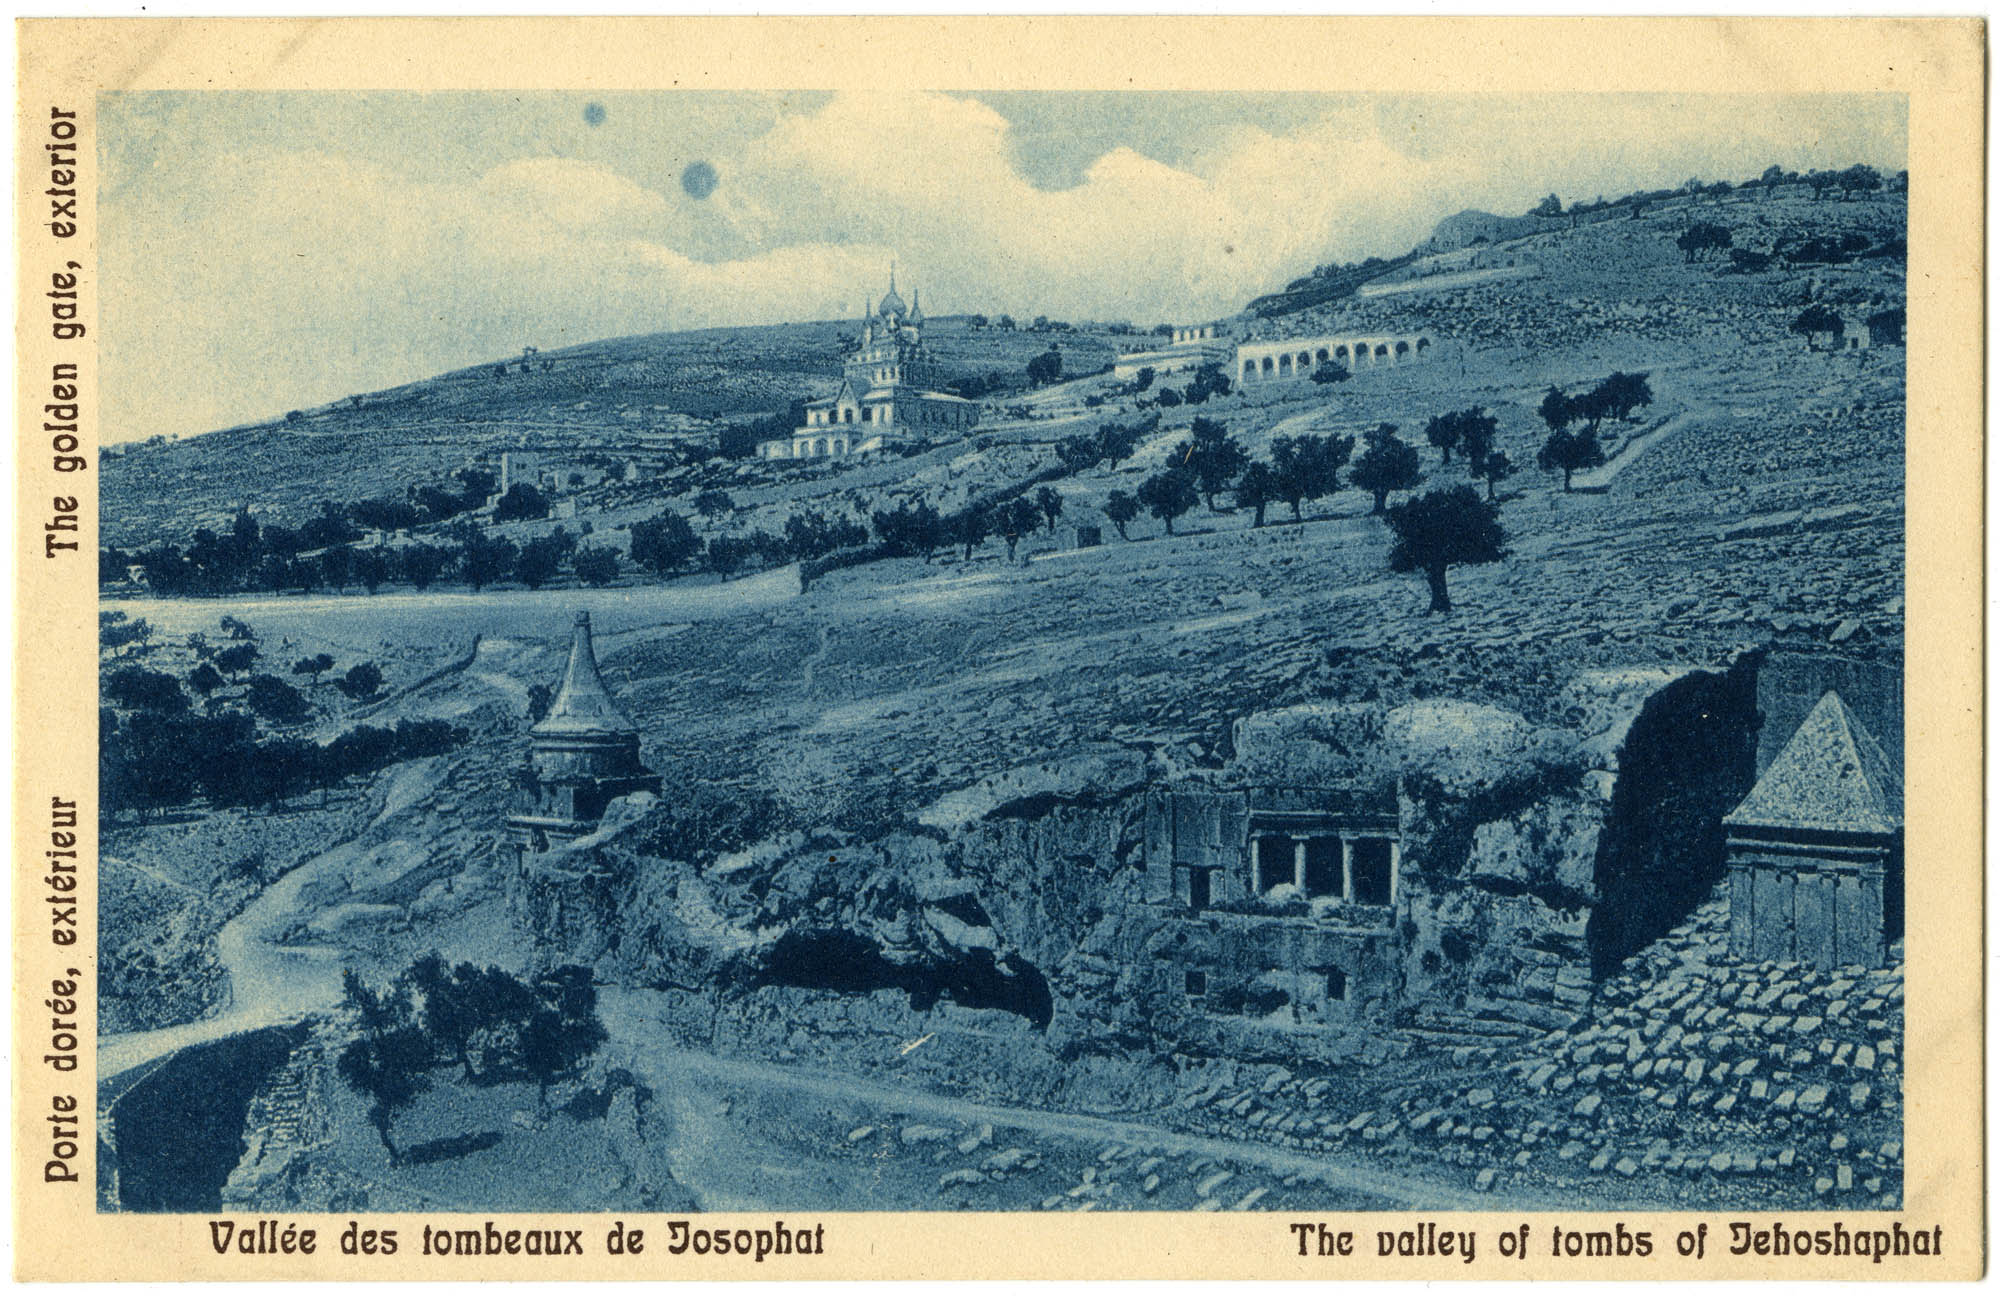 Vallée des tombeaux de Josaphat / The valley of tombs of Jehoshaphat